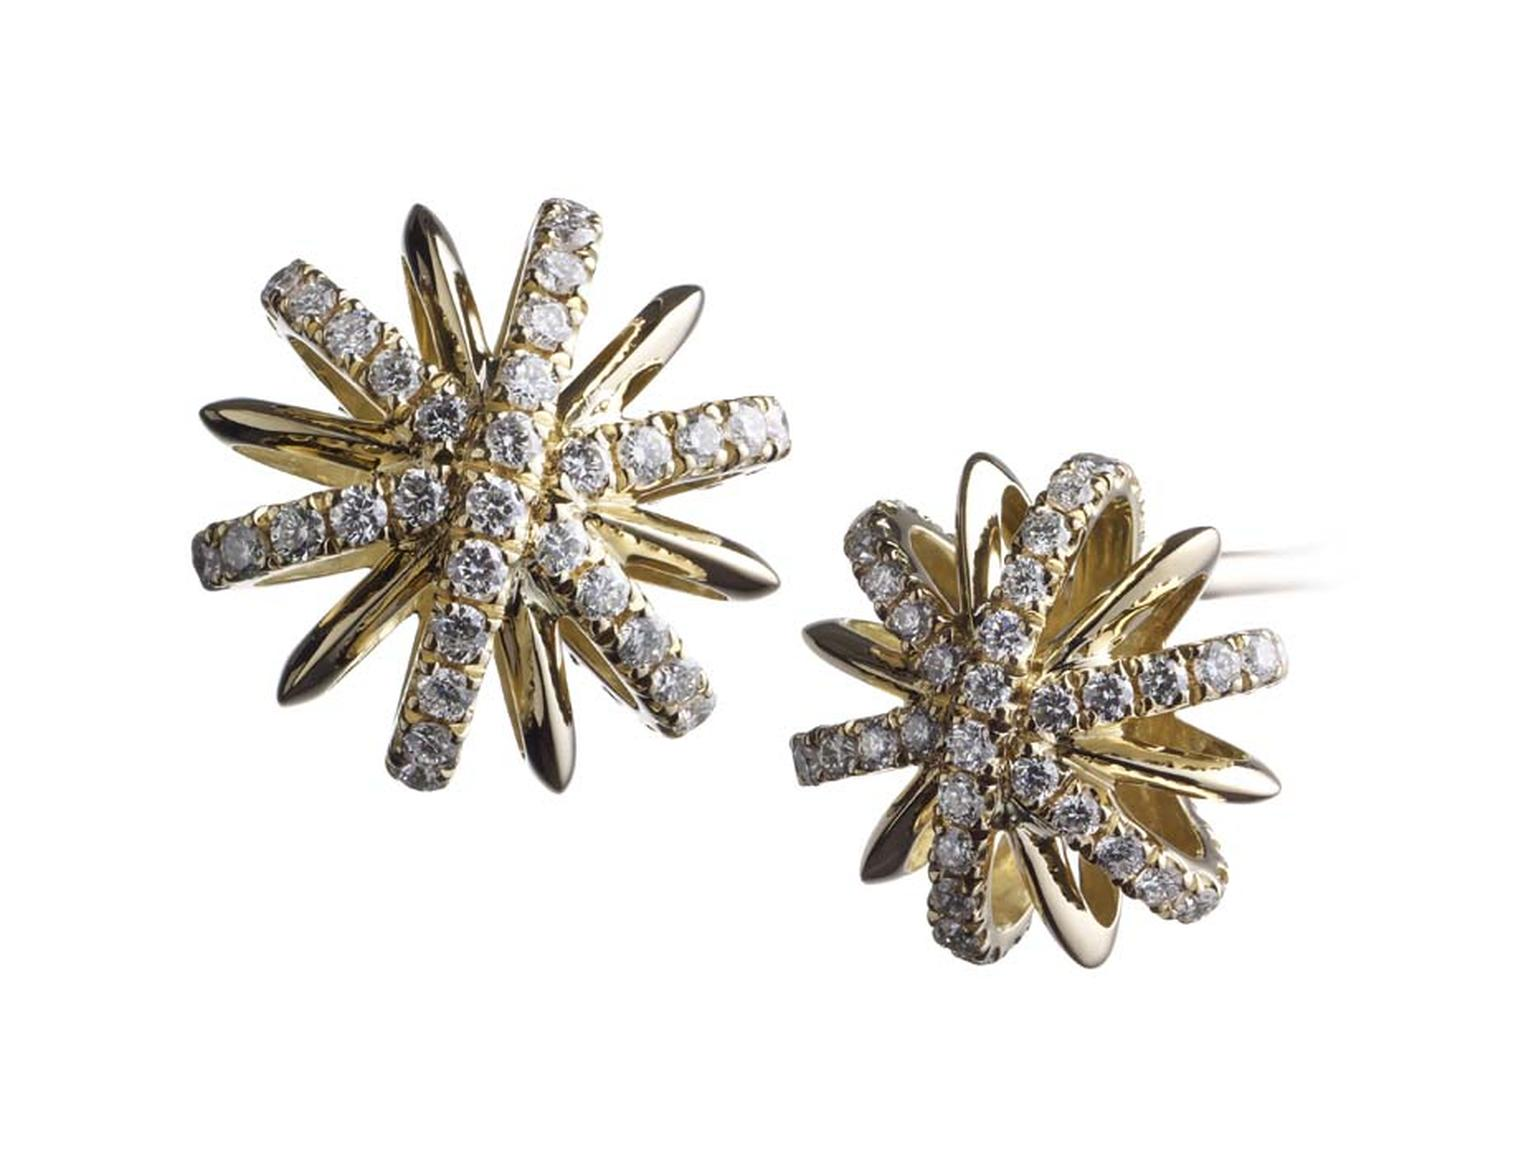 Alexandra Mor limited edition yellow gold Snowflake stud earrings set with 5ct diamonds.